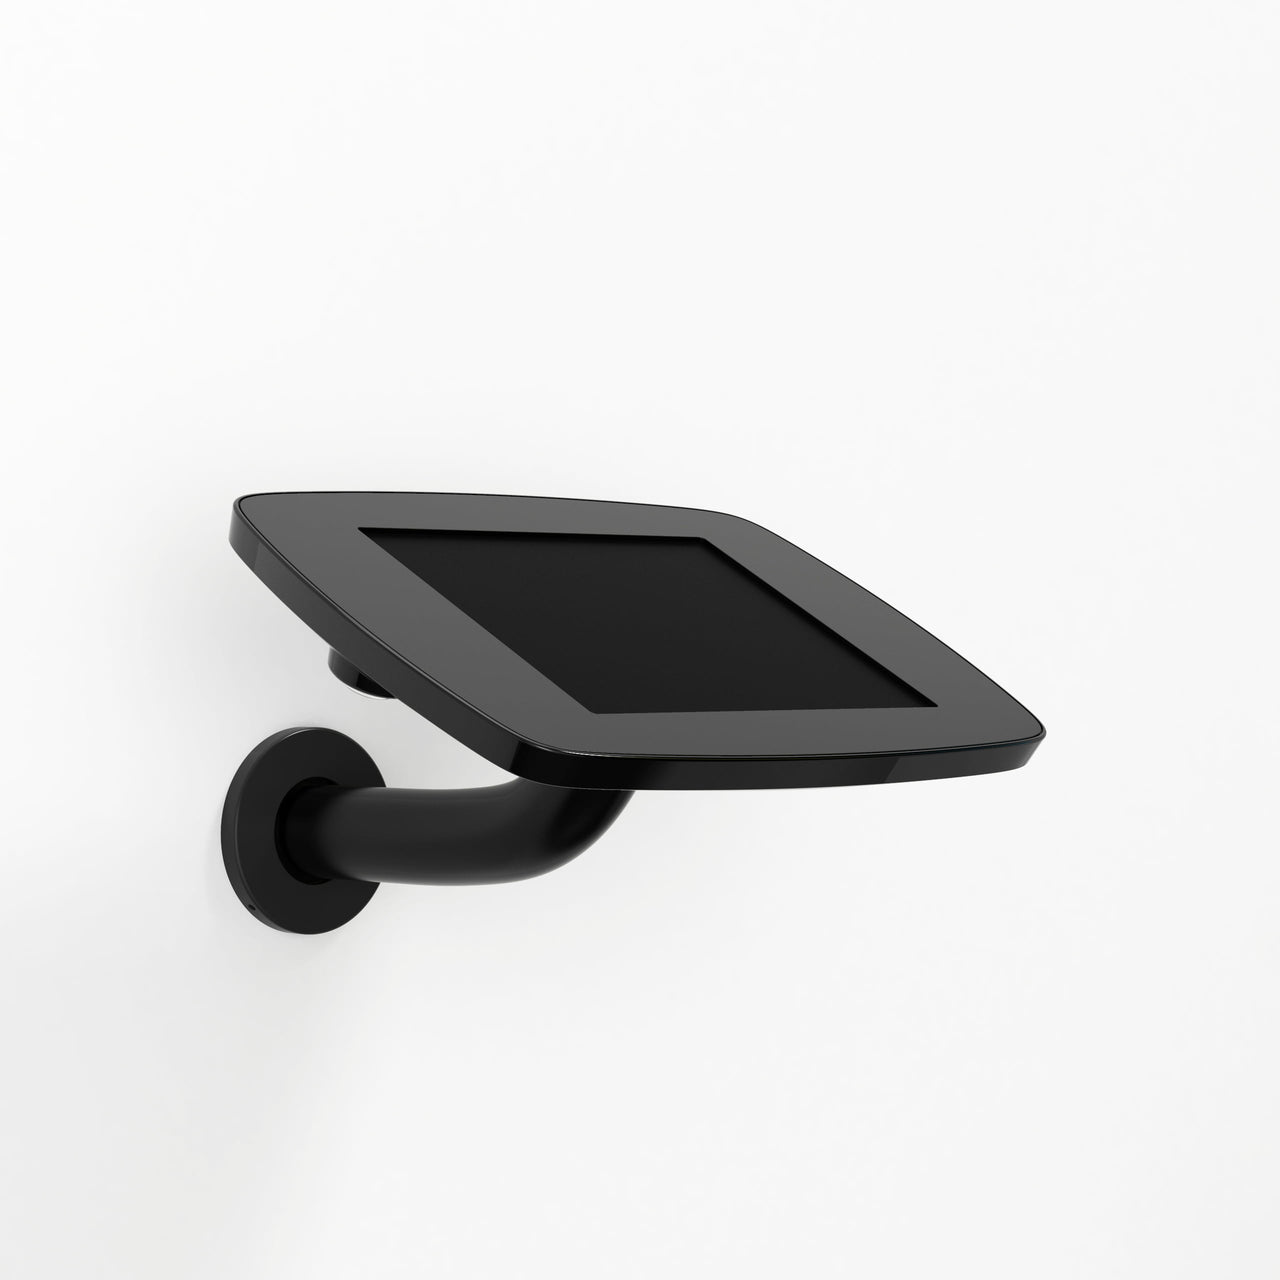 Bouncepad Wallmount - A secure tablet & iPad wall mount in Black.